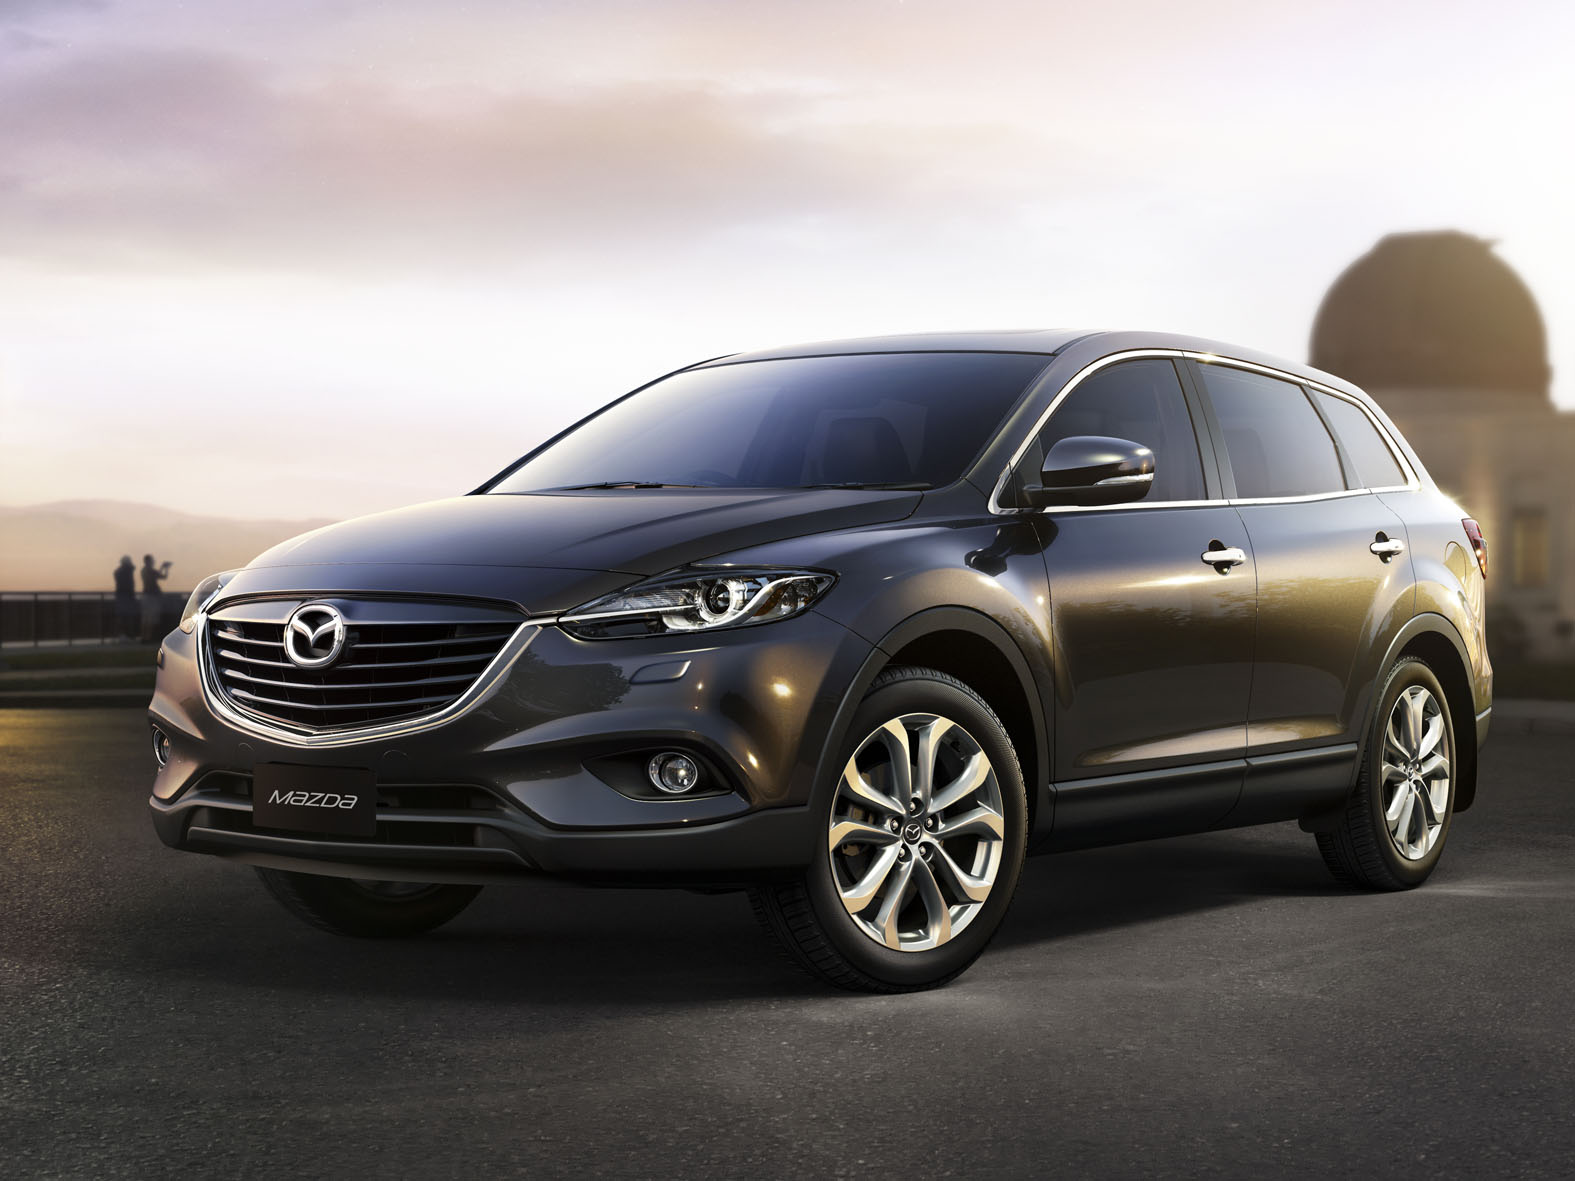 2013 mazda cx 9 review ratings specs prices and photos the car connection. Black Bedroom Furniture Sets. Home Design Ideas